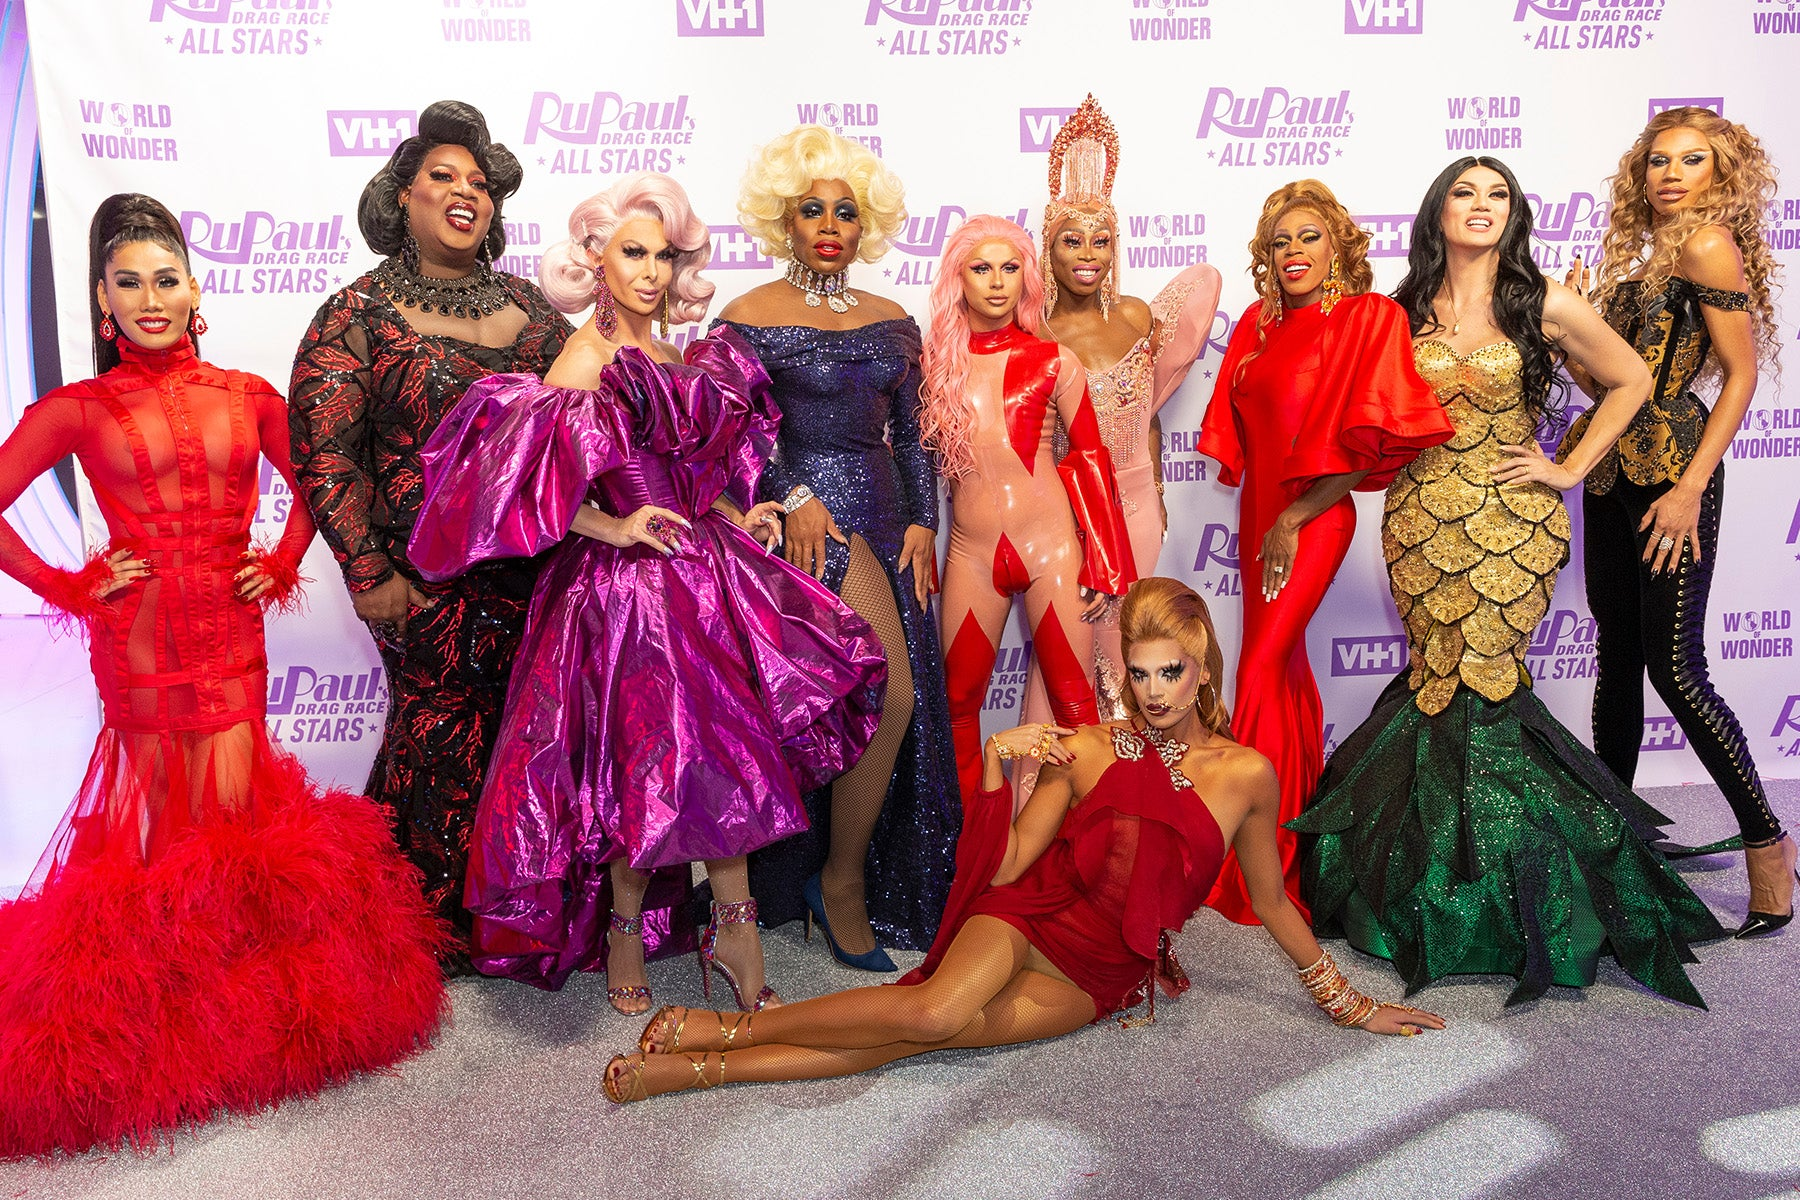 RuPaul's Drag Race Contestants | Drag Race All Stars